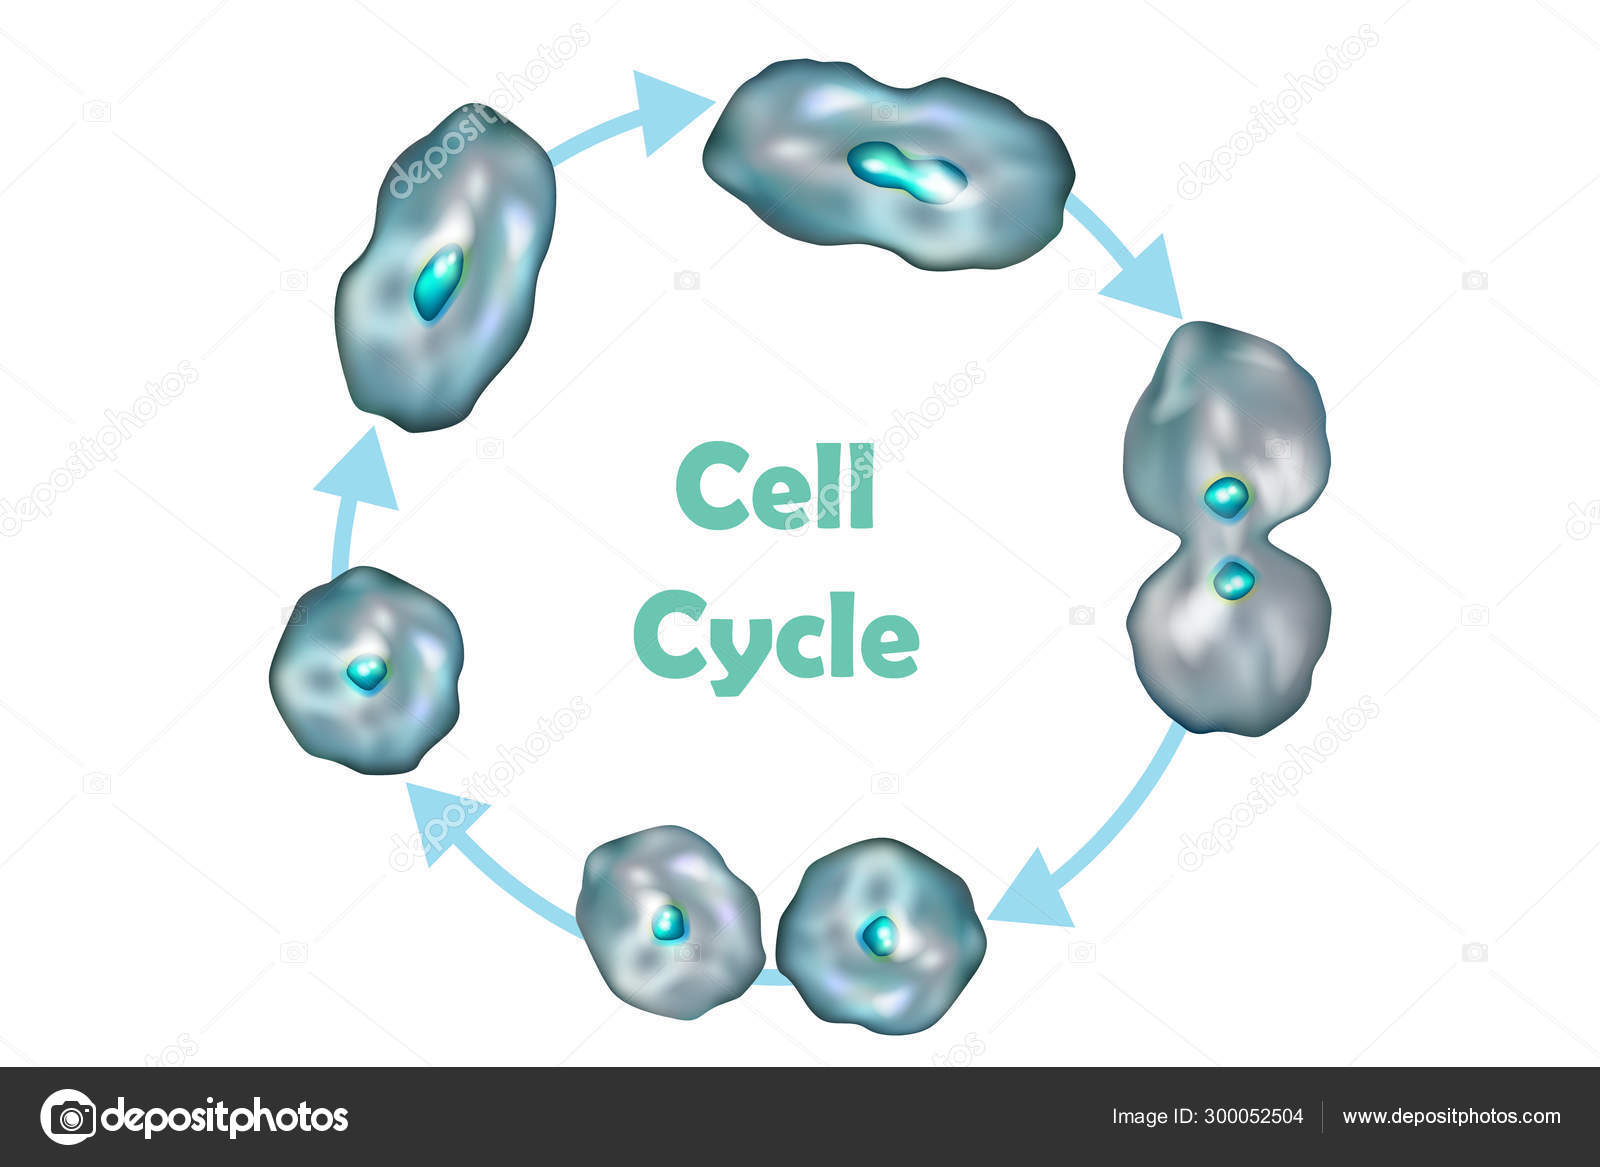 Cell Cycle Cell Division Quiescence Growth Dna Replication